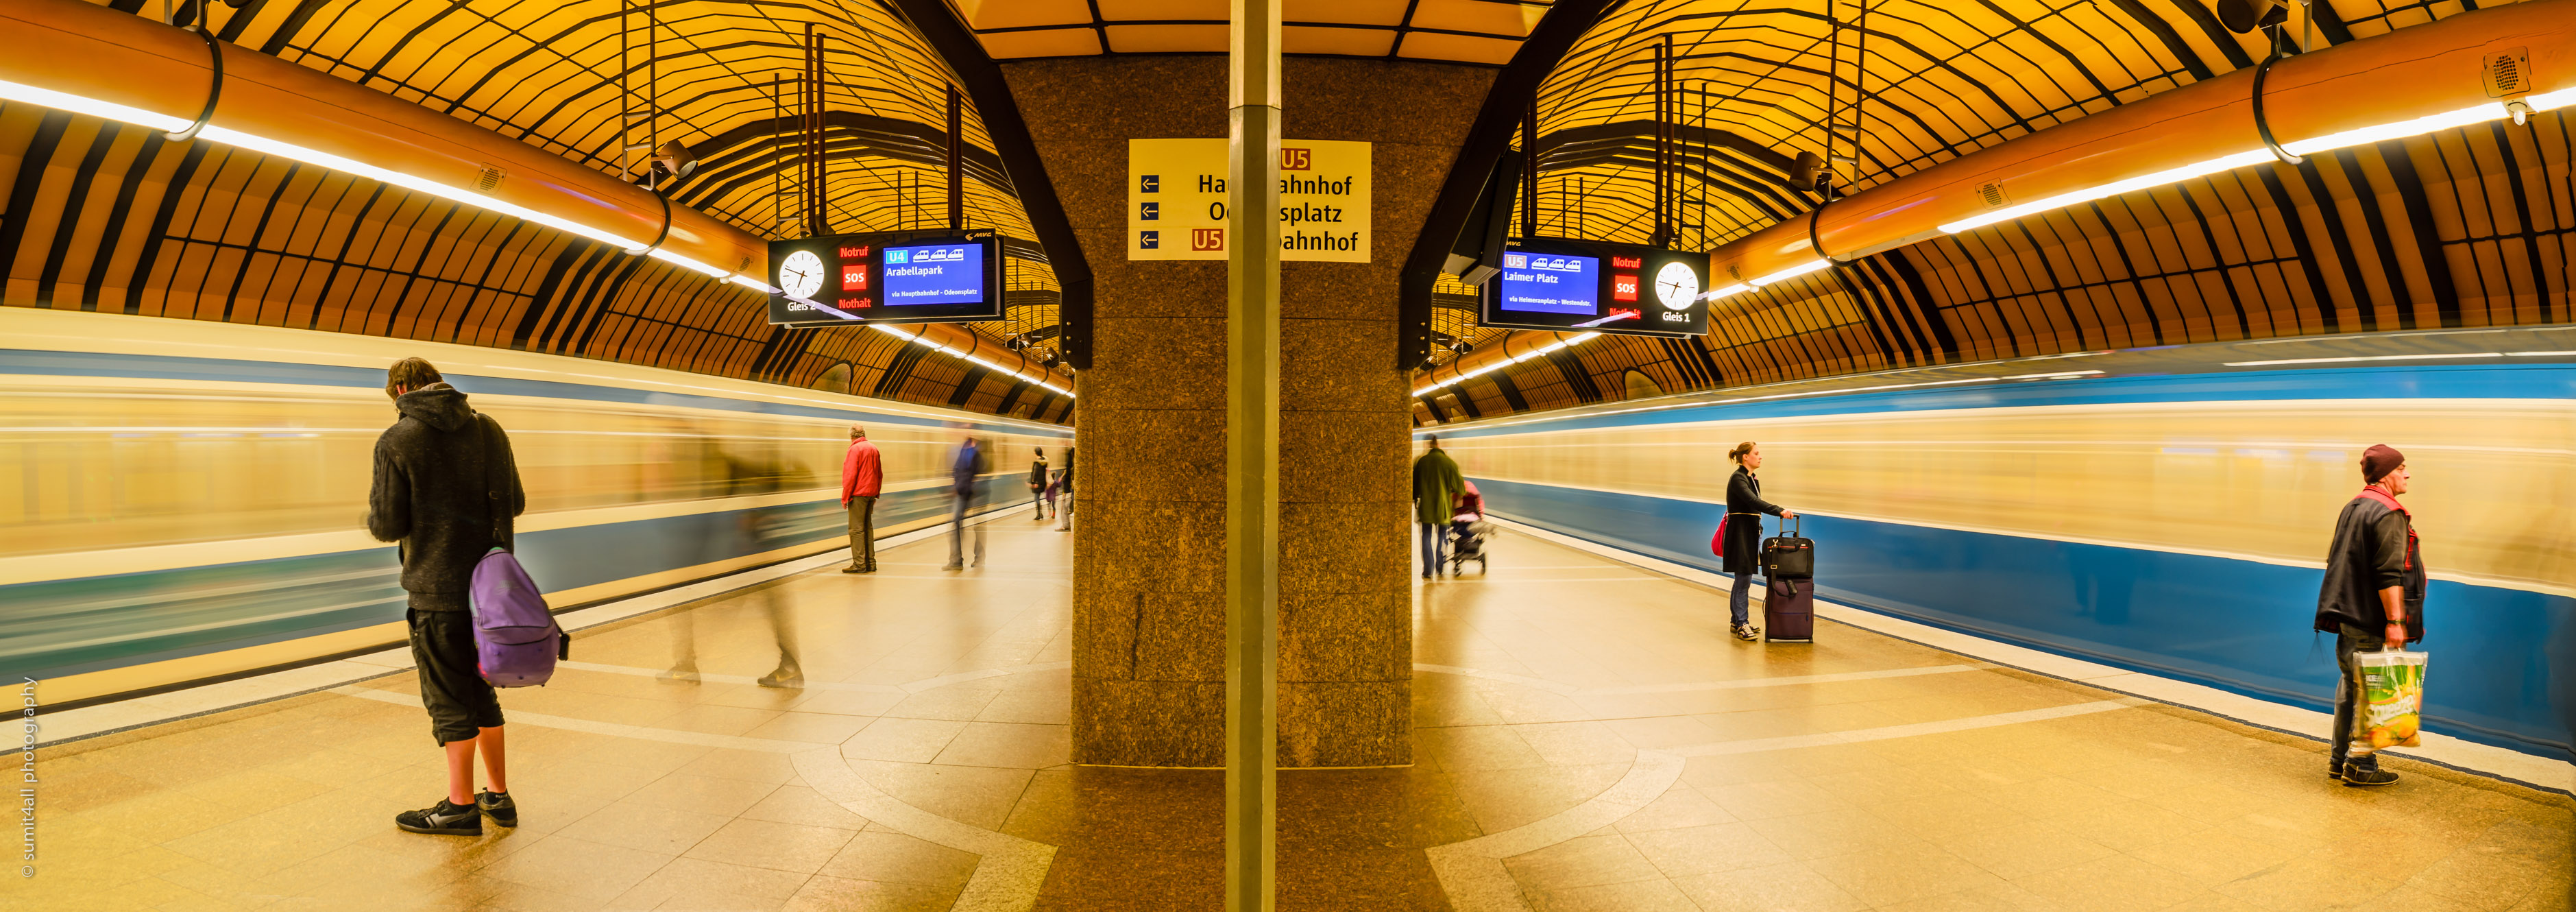 Metro Stations in Munich – An Artistic Statement